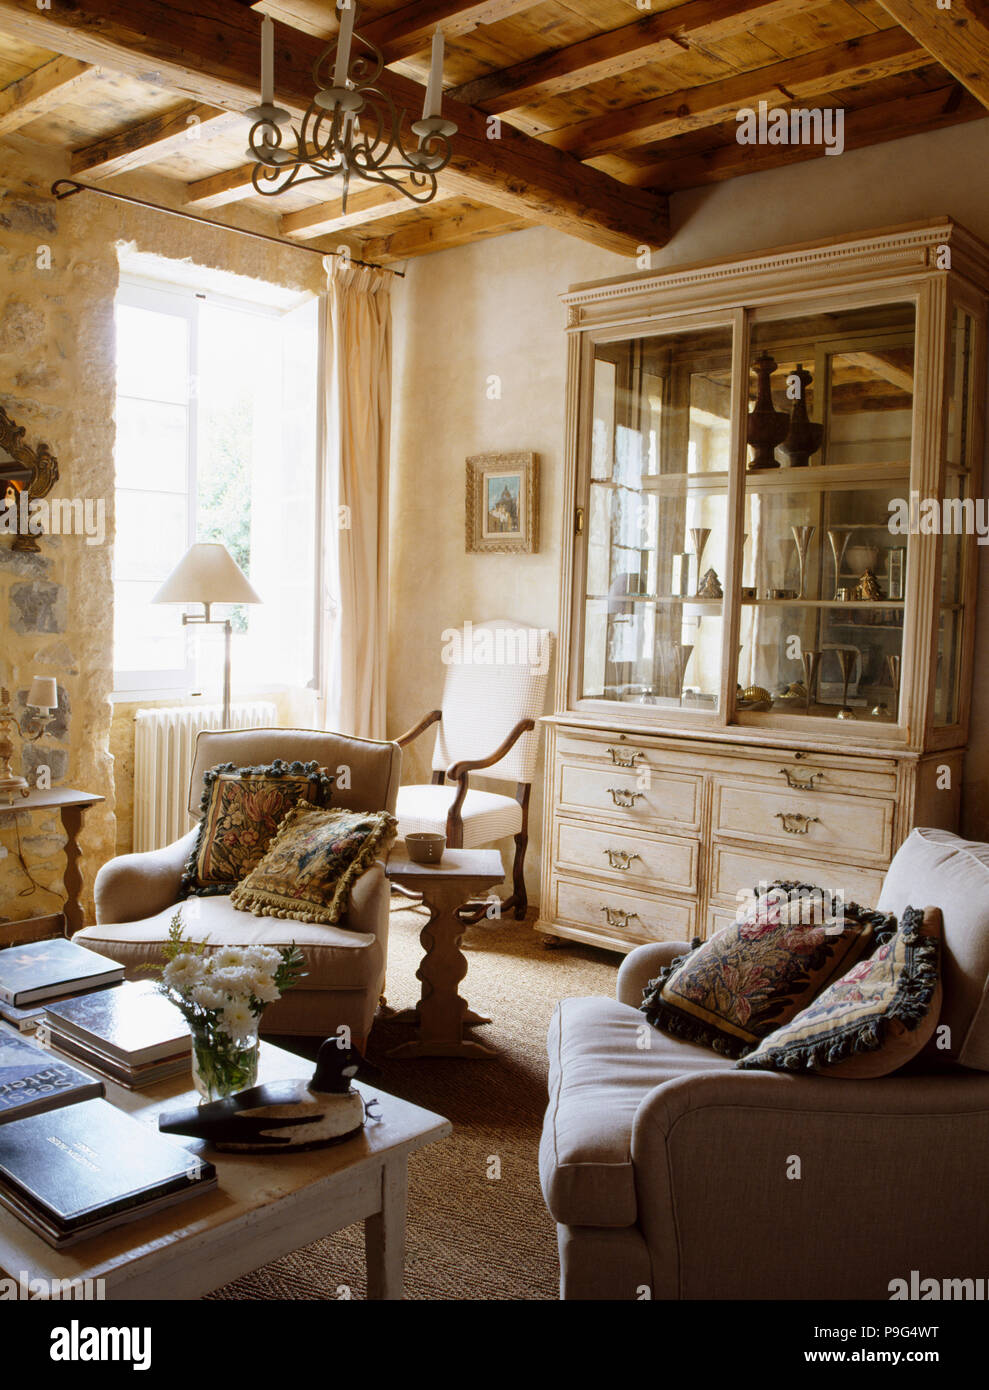 Comfortable Armchairs In French Country Living Room With